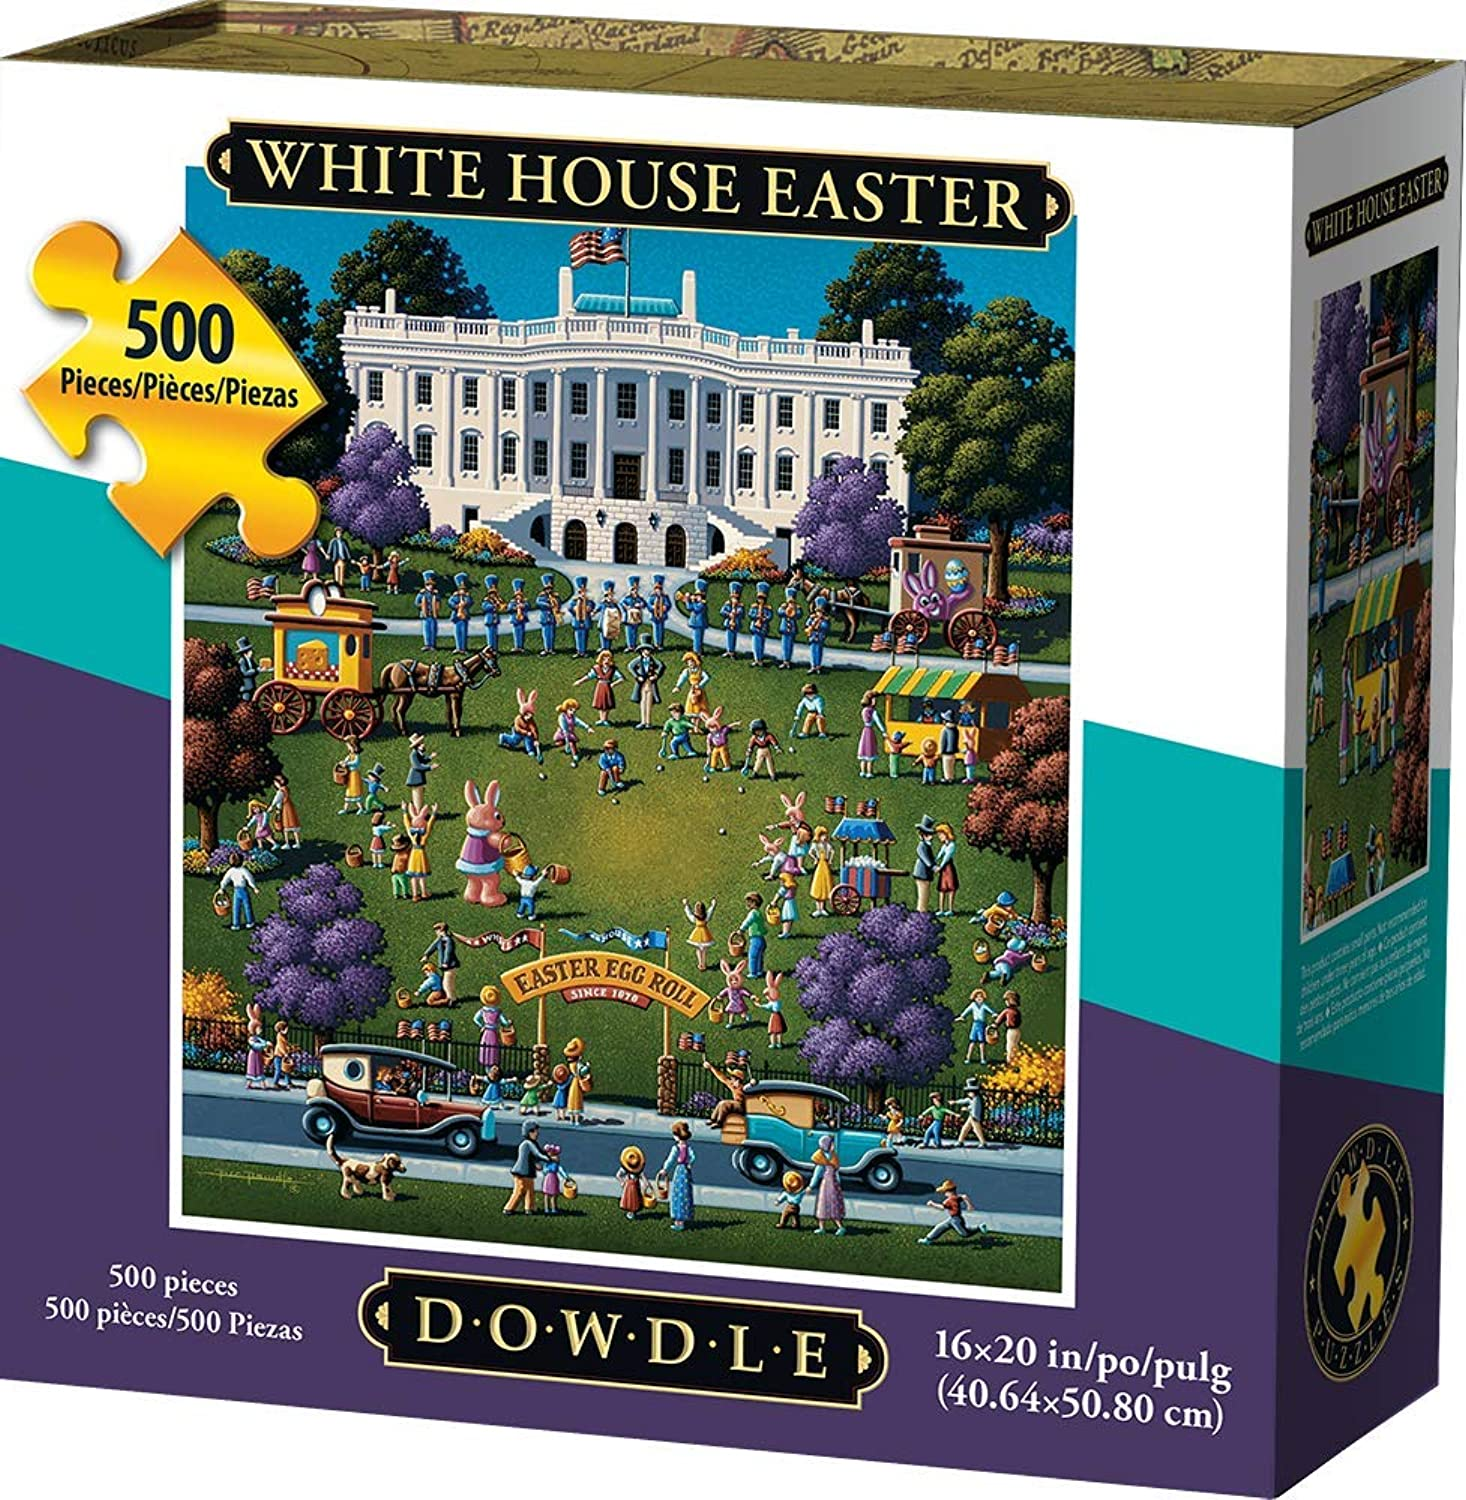 Jigsaw Puzzle - Weiß House Easter Egg Roll 500 Pc By Dowdle Folk Art